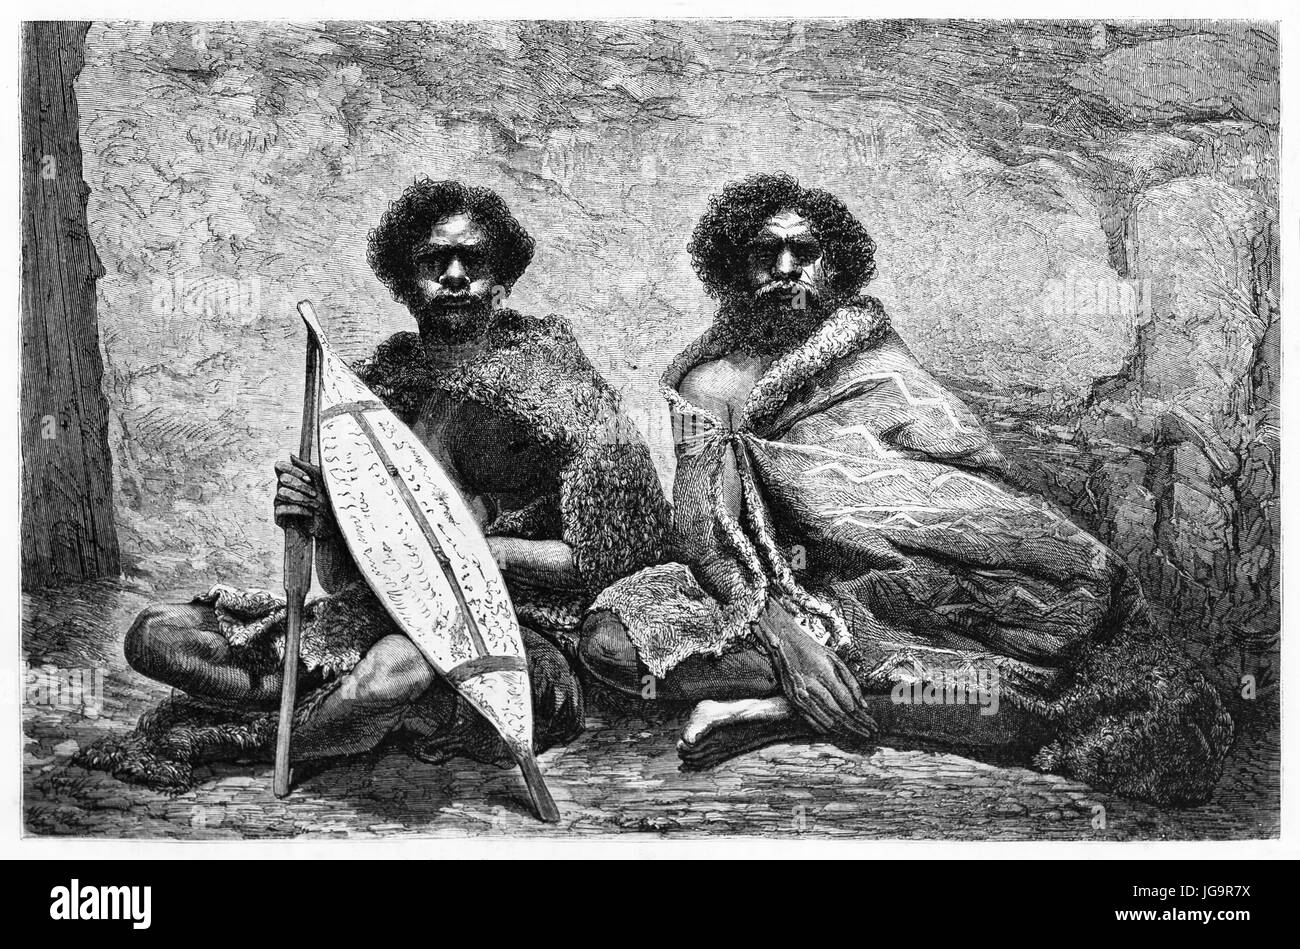 Old engraved portrait of Australian aboriginals. Created by Riou and Maurand after photo of unknown author, published - Stock Image